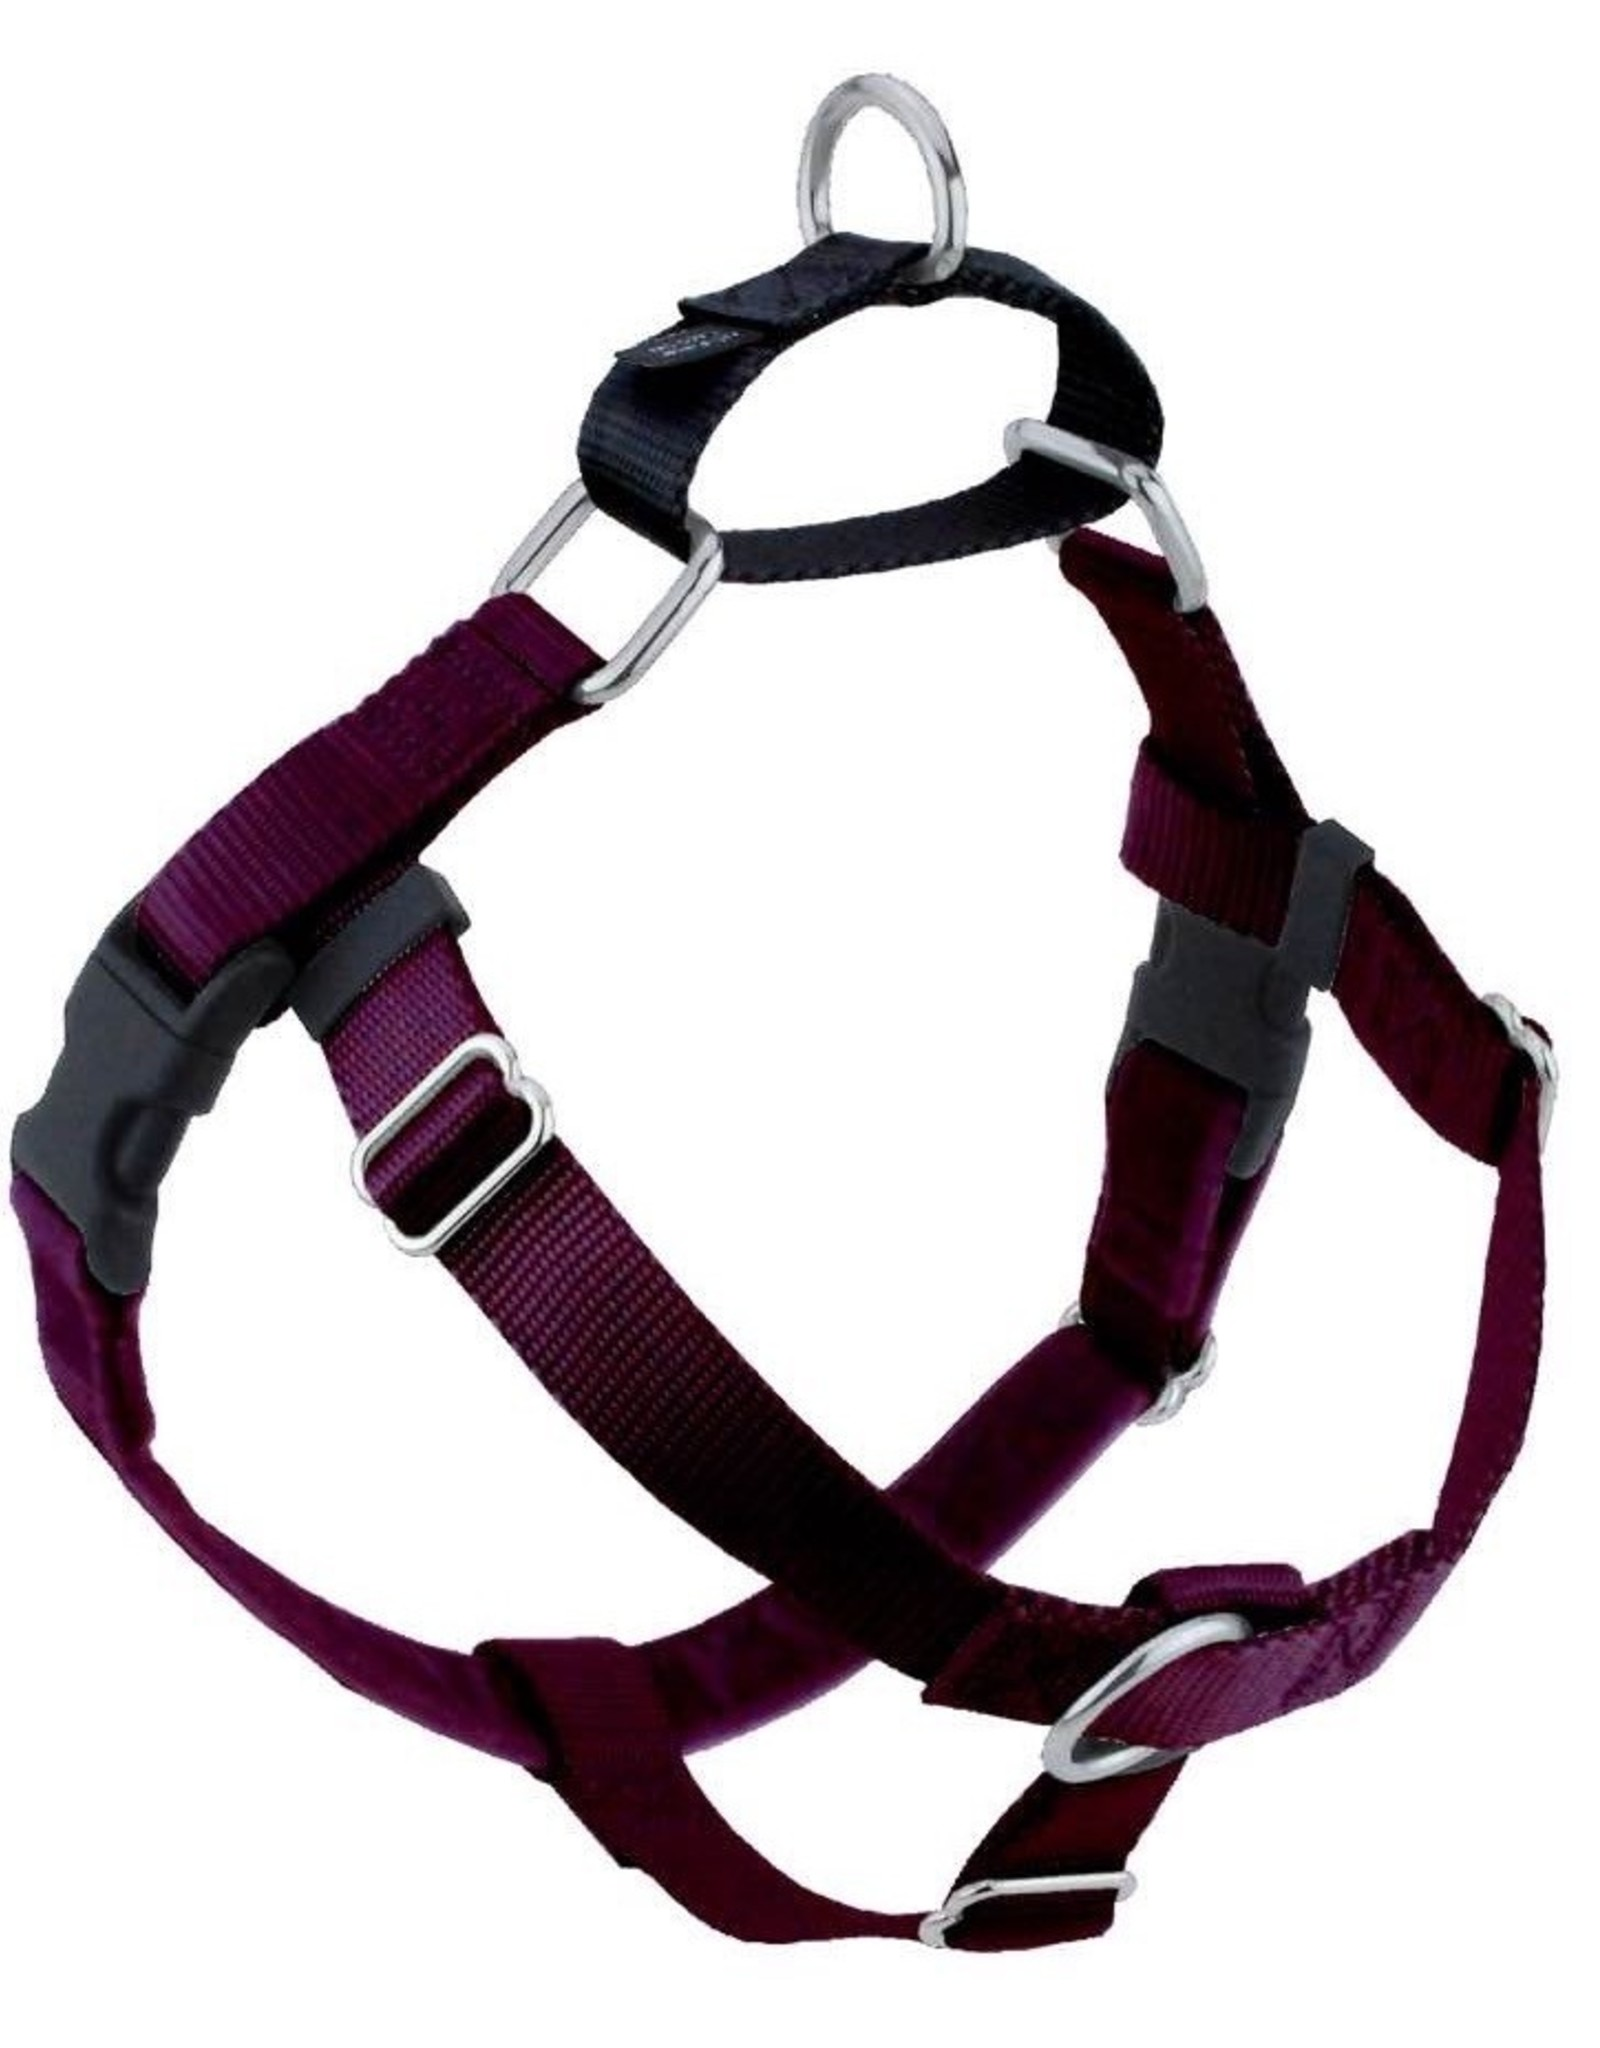 """2 Hounds Design 1"""" Freedom Harness and Leash - Burgundy"""